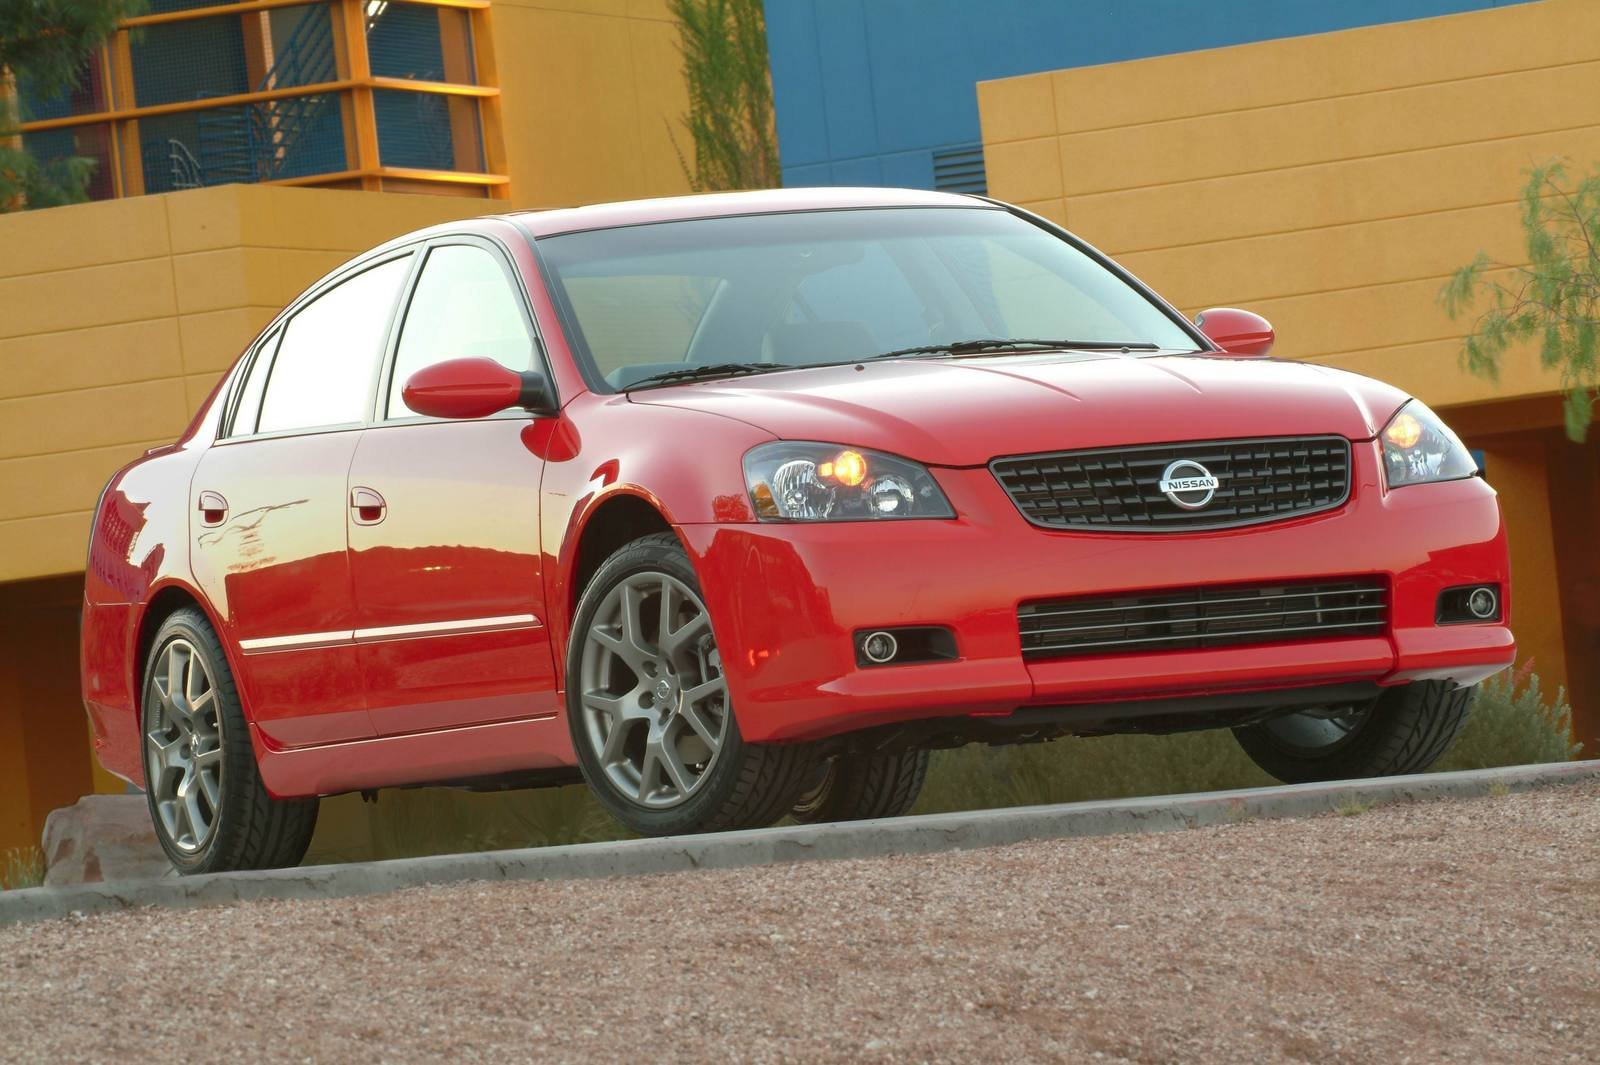 2006 Nissan Altima SE-R Review - Top Speed